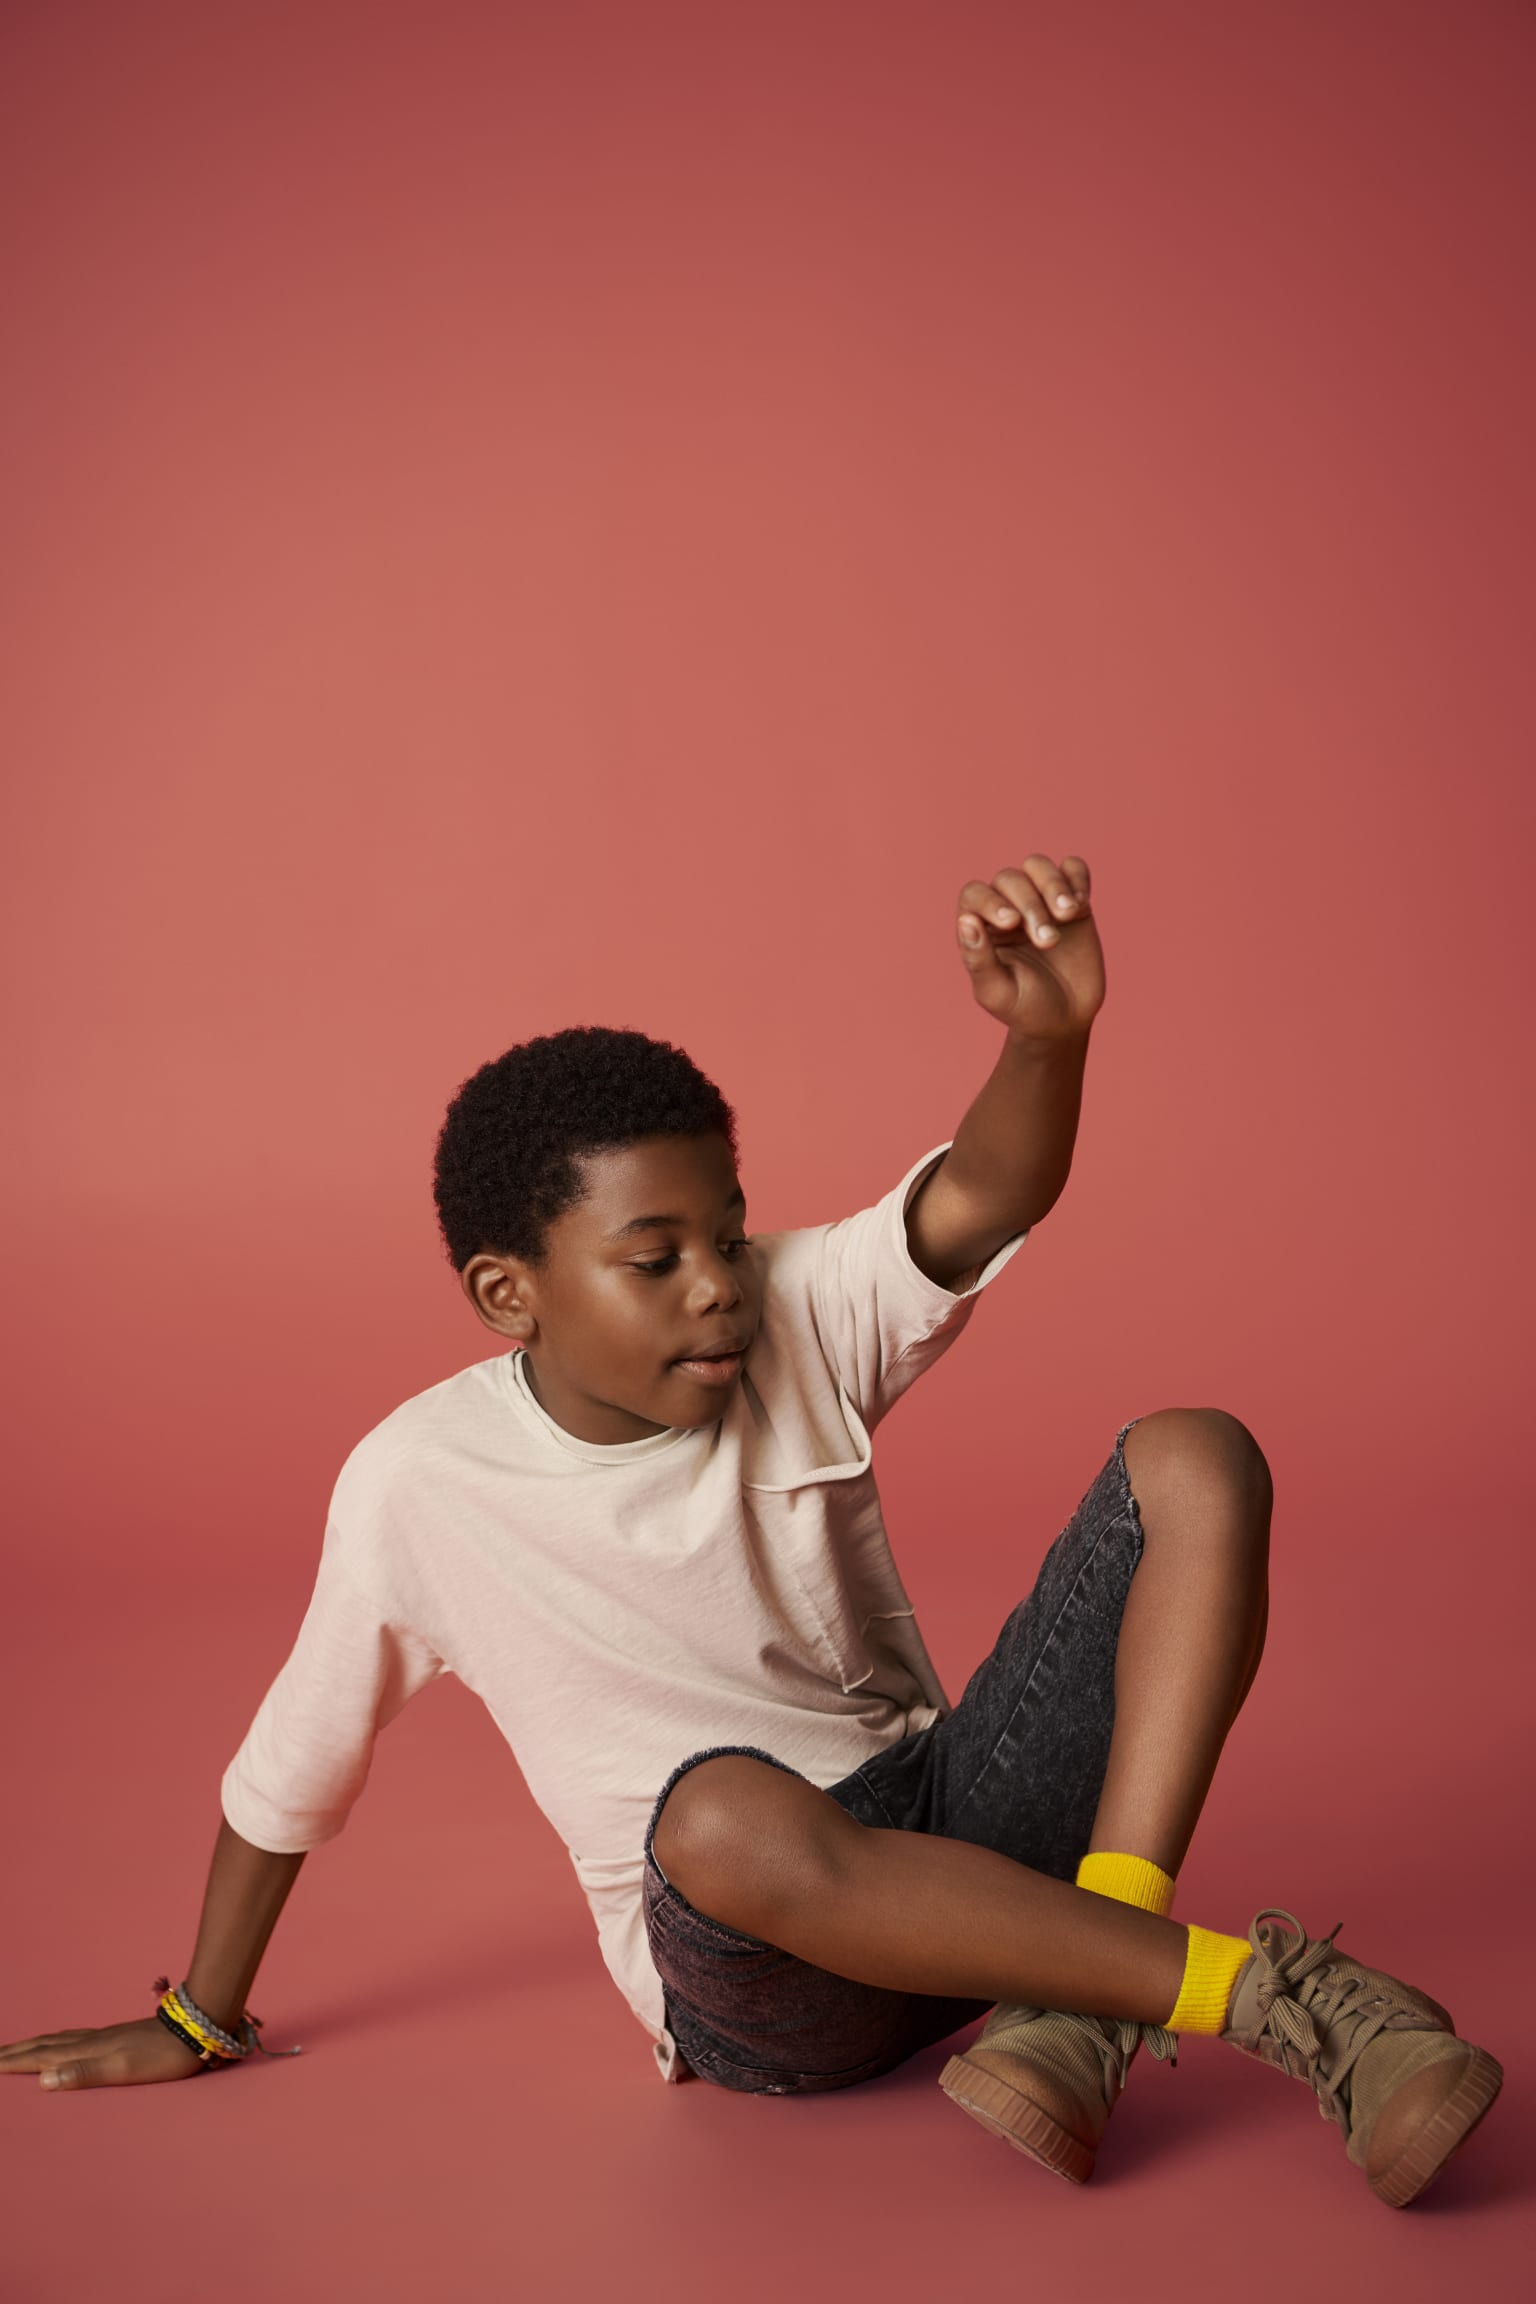 Clarks Kids SS19 Campaign